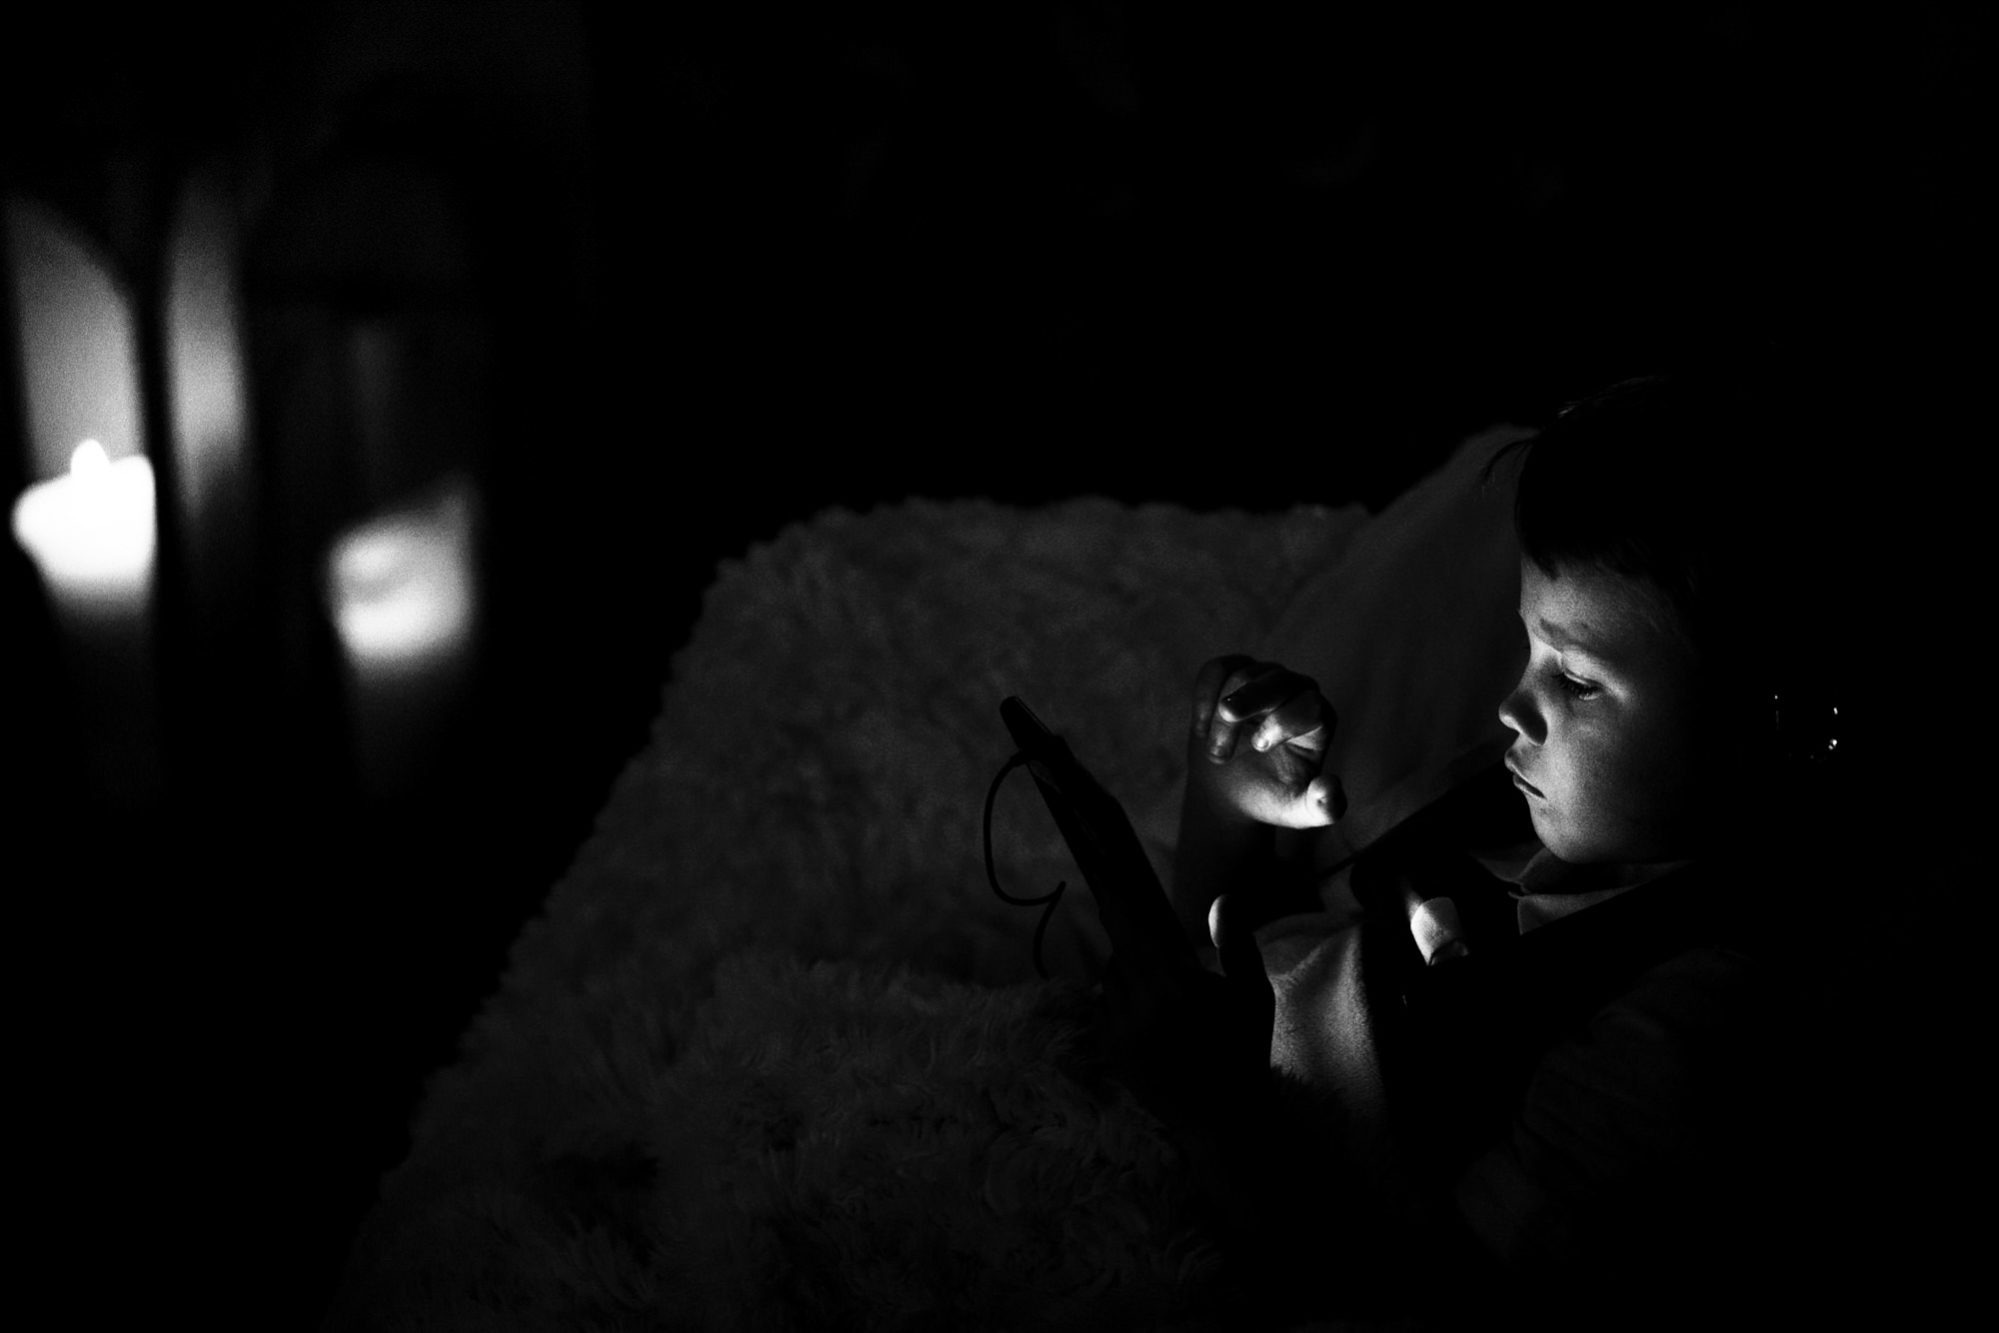 little boy on ipad with lit up face